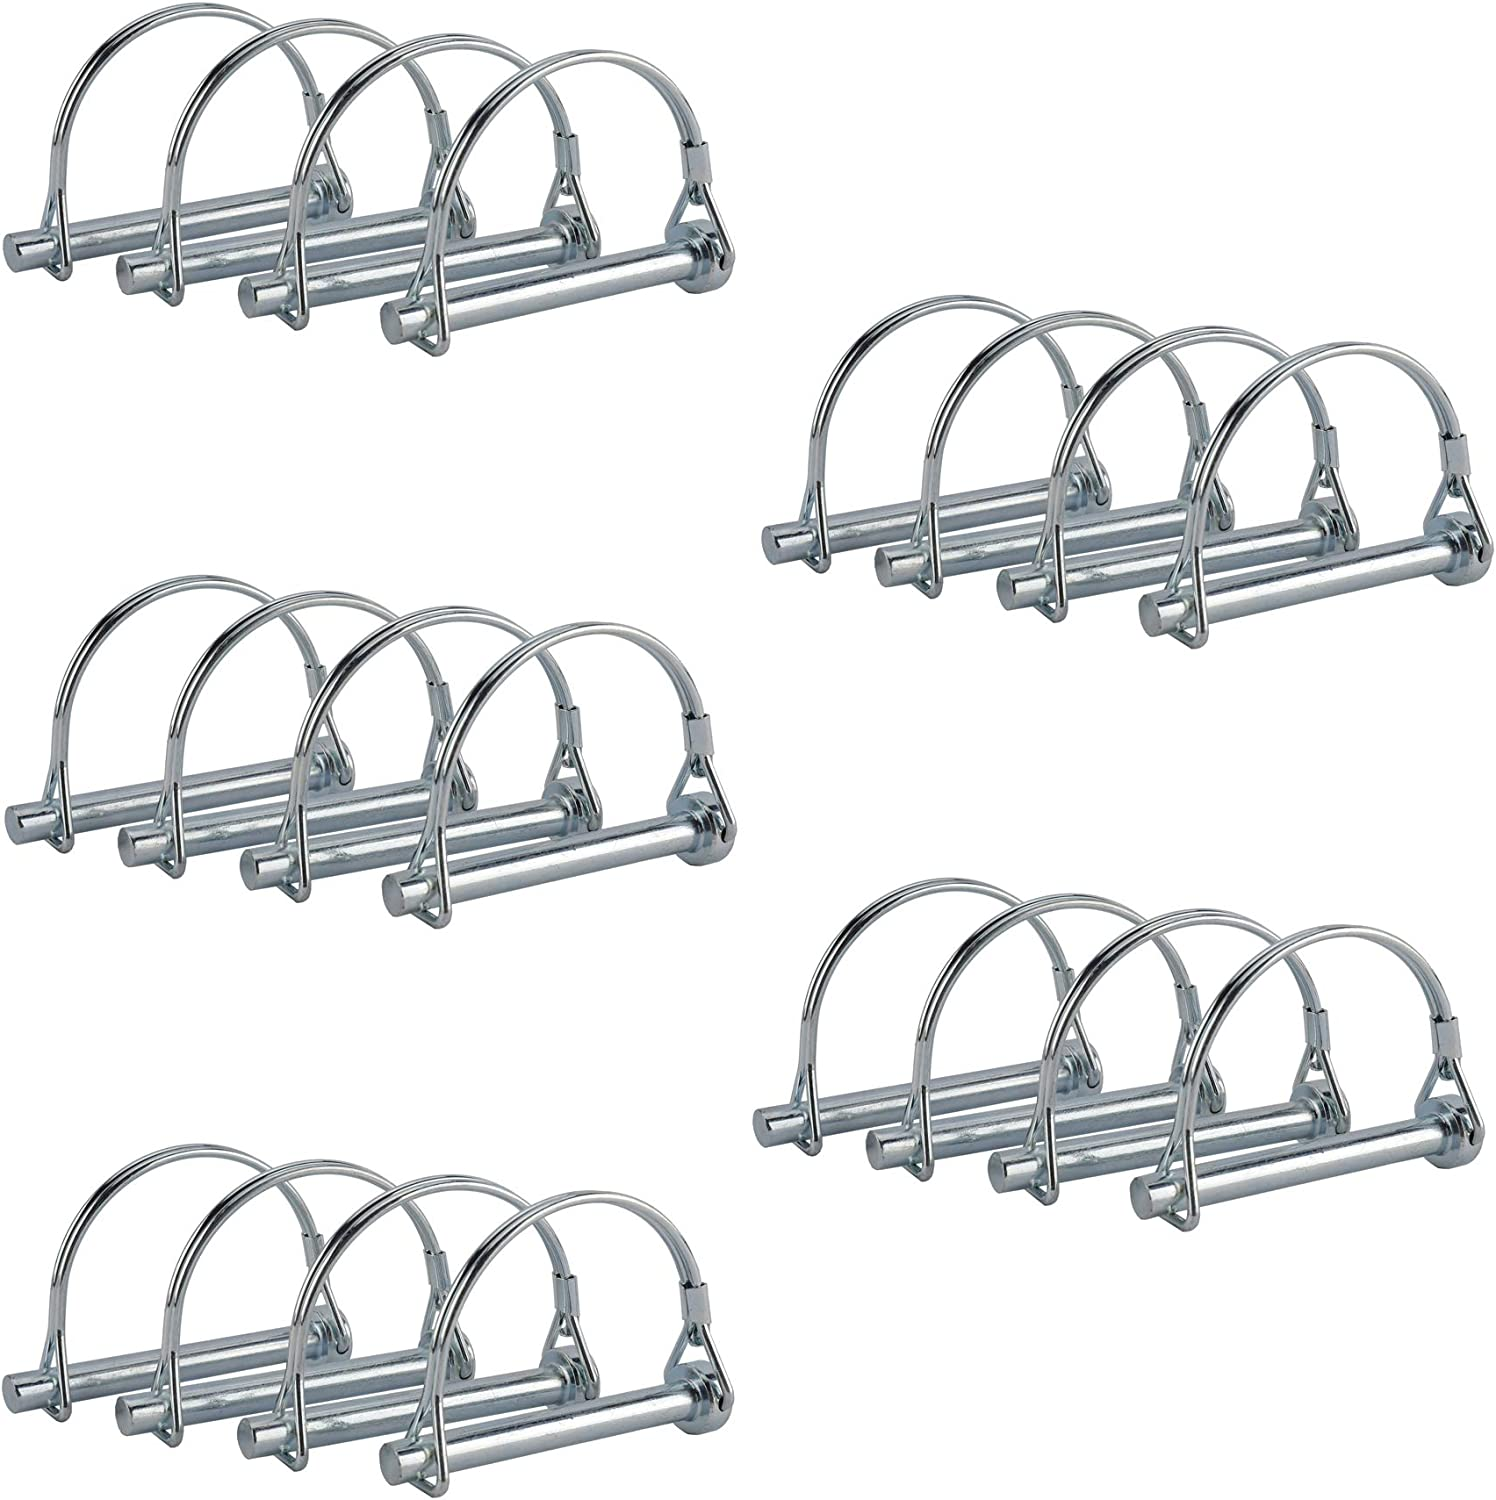 AuInn Pack of 20 Wire Lock Pins, 5/16 Inch Shaft Locking Pin Heavy Duty Safety Coupler Pin Hitch Pin with Round Arch Wire Retainer for Trailers Lawn Garden